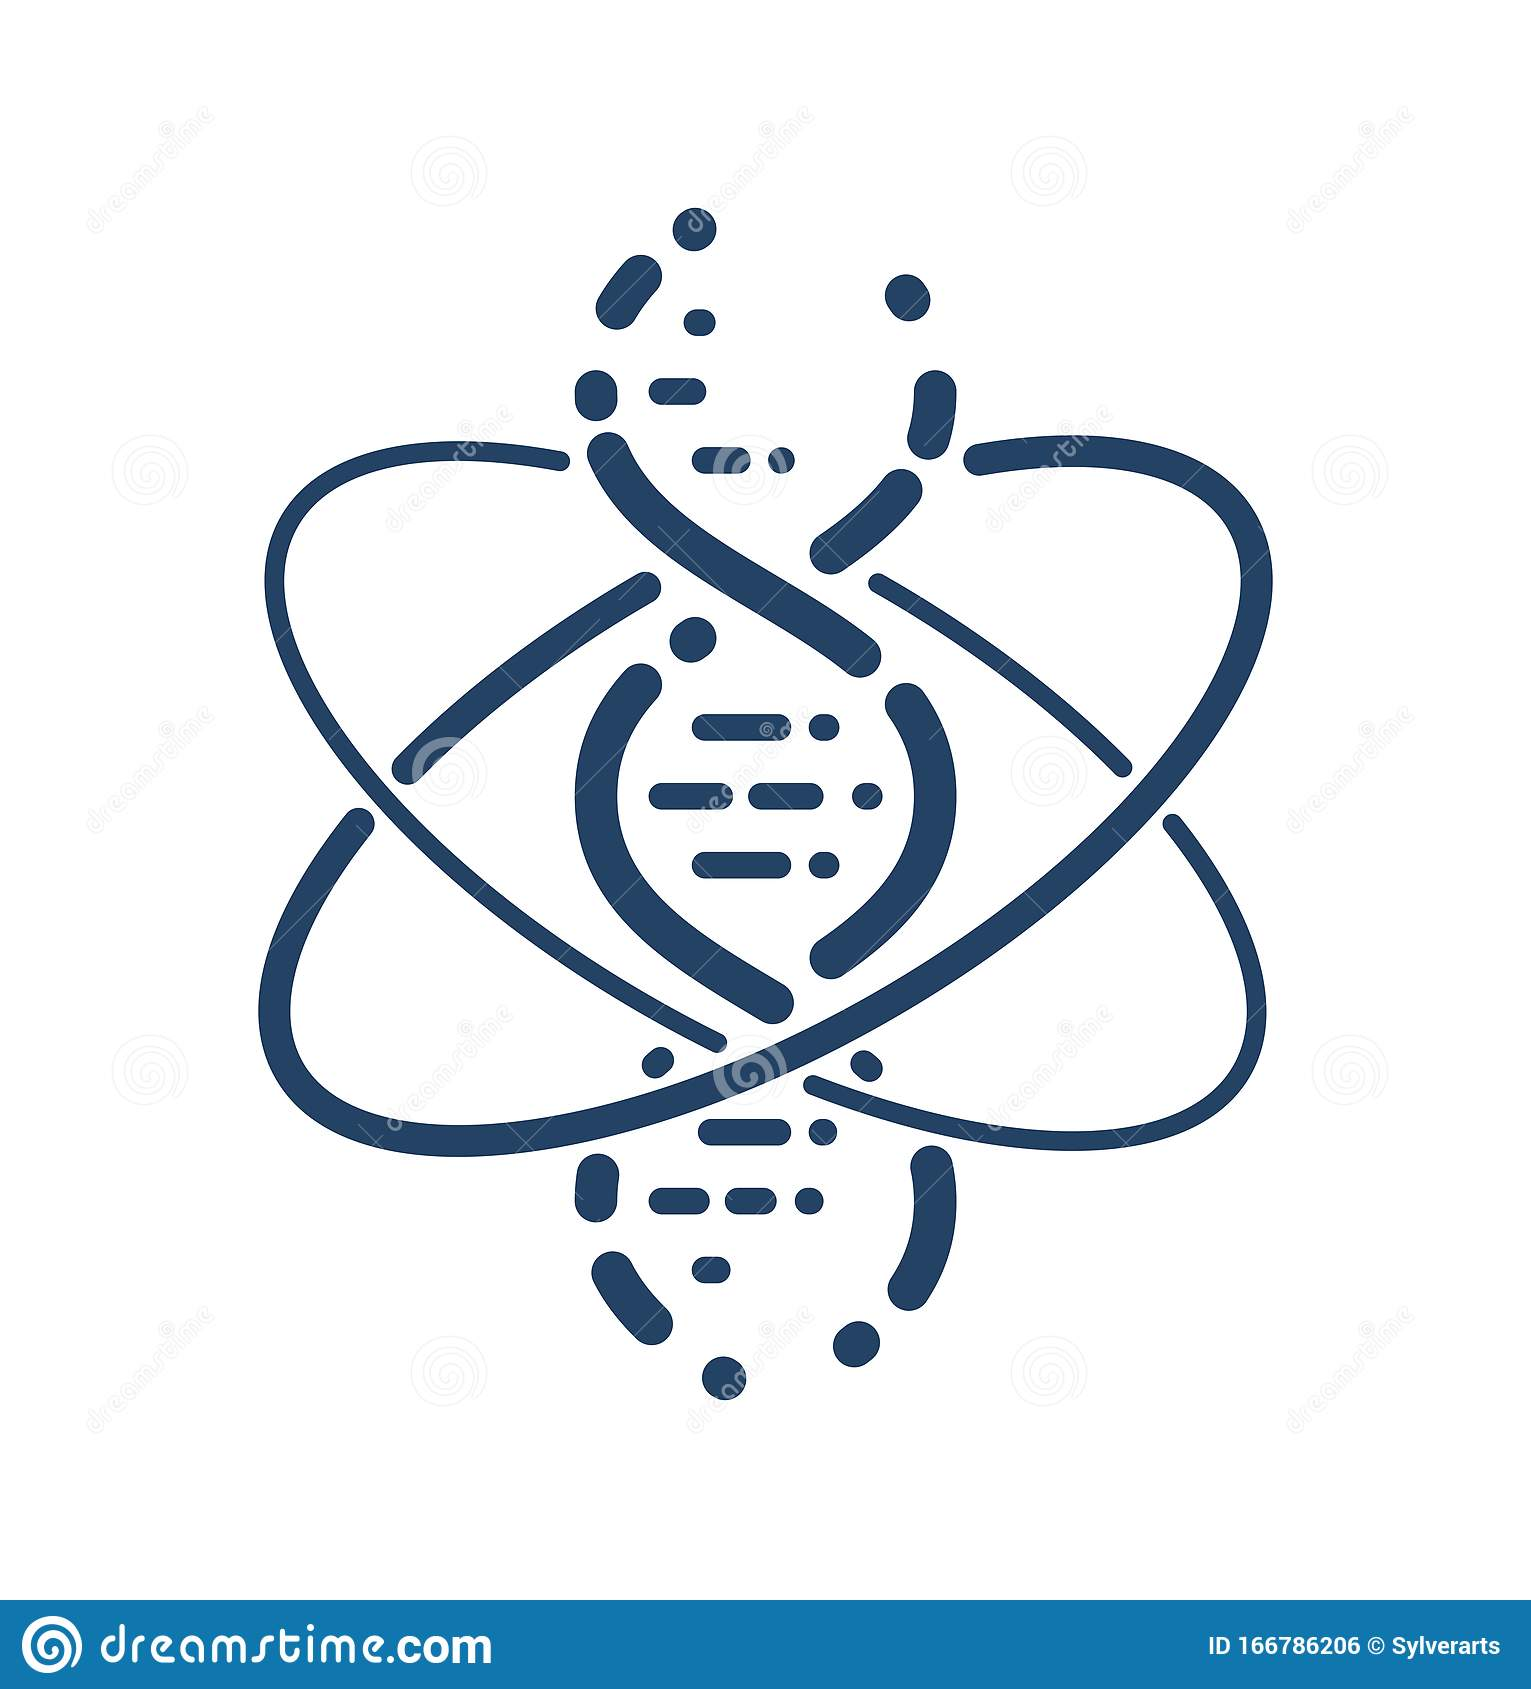 Dna Strand And Atom Vector Simple Linear Icon Science